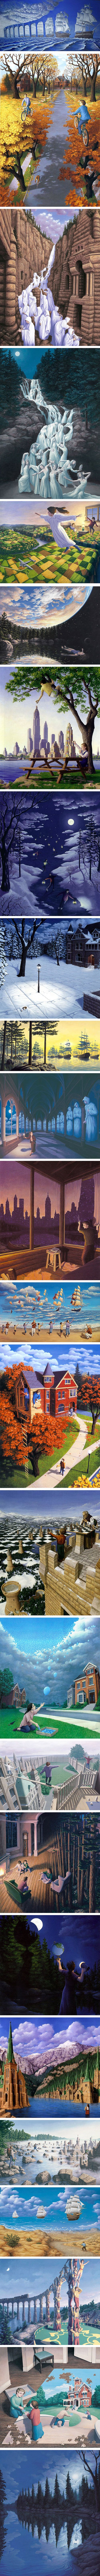 The beautiful and mind-bending illusions in Canadian artist Robert Gonsalves' paintings have a fun way of twisting your perception and causing you to question what in his paintings, if anything, is real. Most of his stunning paintings have an unclear boundary between the multiple stories they tell, which forces the viewer to jump back and forth between them – like an optical illusion that changes every time you look at it.